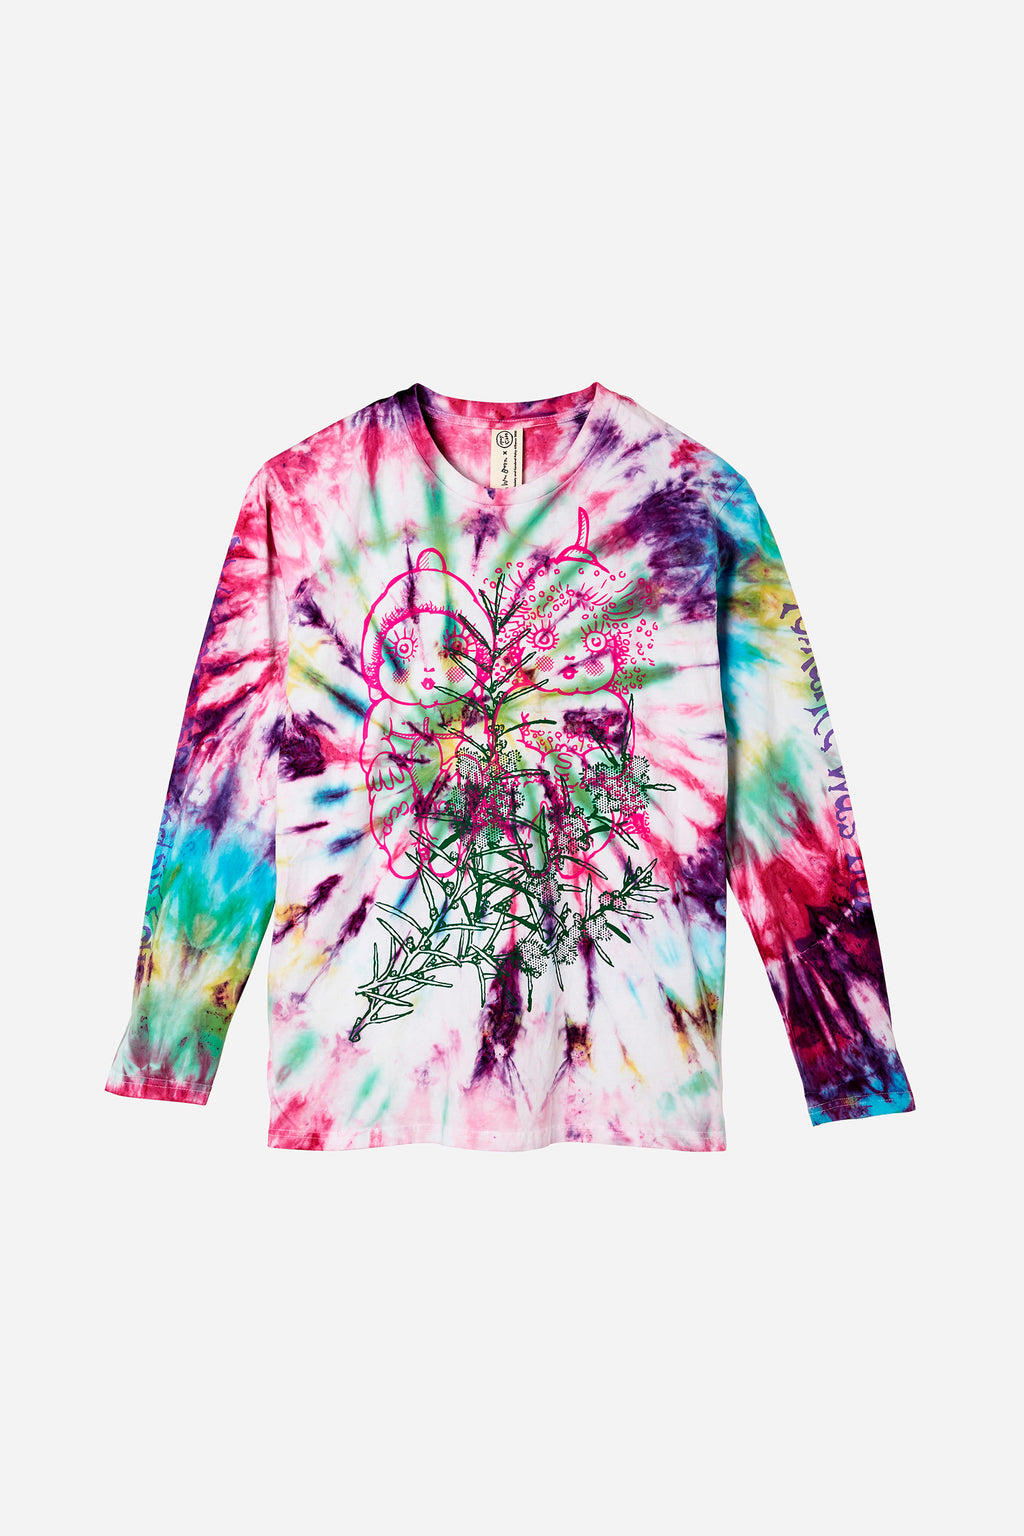 Snugglepot & Cuddlepie Art Dye Long Sleeve Tee